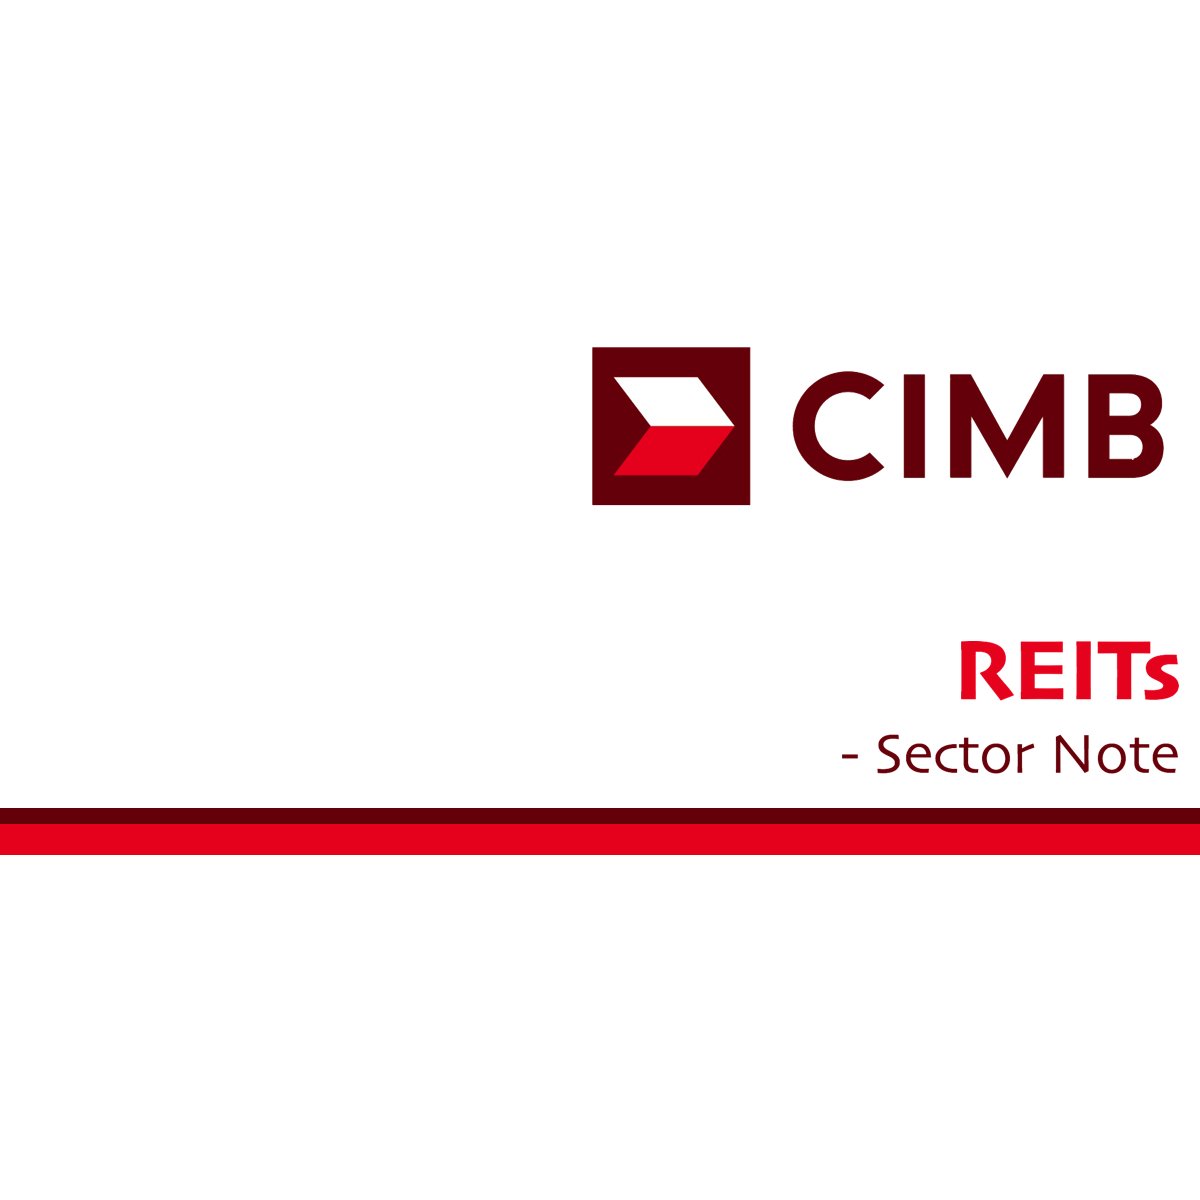 S-REITs - CGS-CIMB Research 2018-07-05: Yield Spread Still Under Pressure